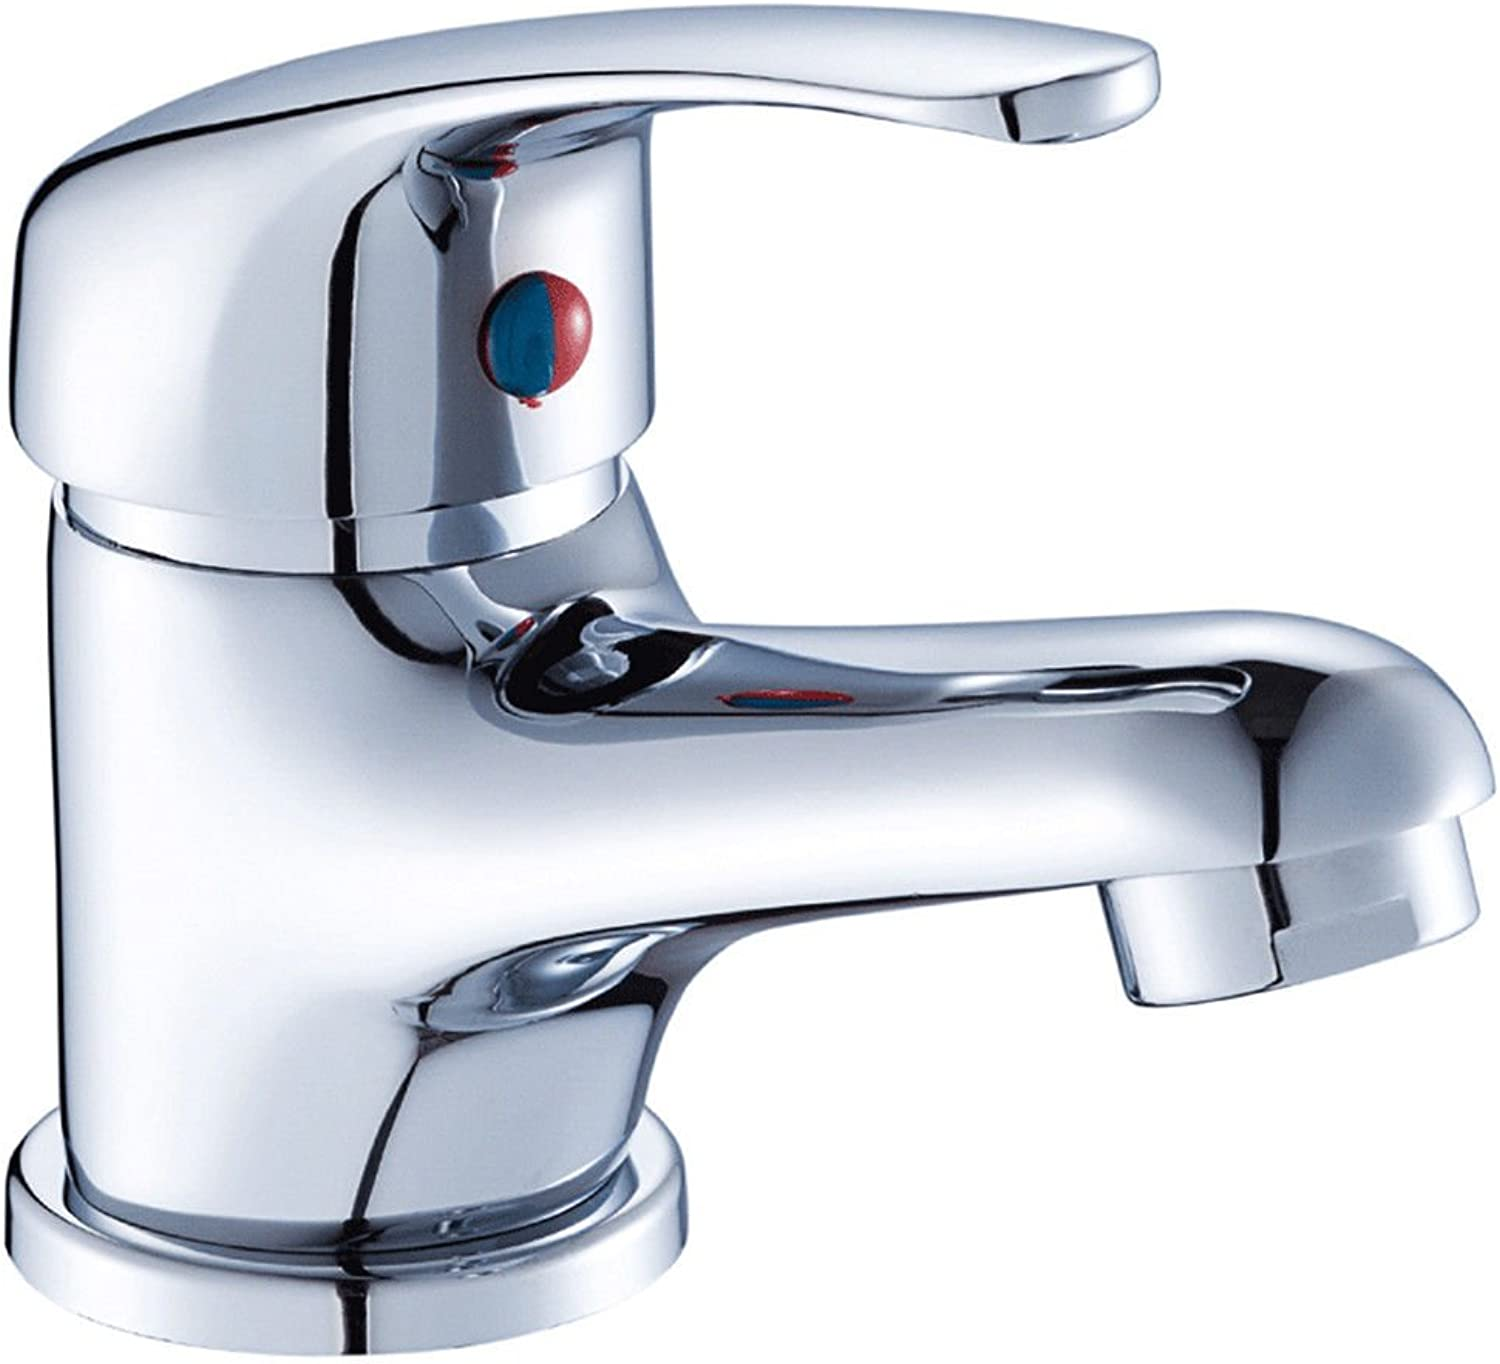 ETERNAL QUALITY Bathroom Sink Basin Tap Brass Mixer Tap Washroom Mixer Faucet Basin mixer single hole and cold water faucets copper bathroom basin Faucet Kitchen Sink Tap